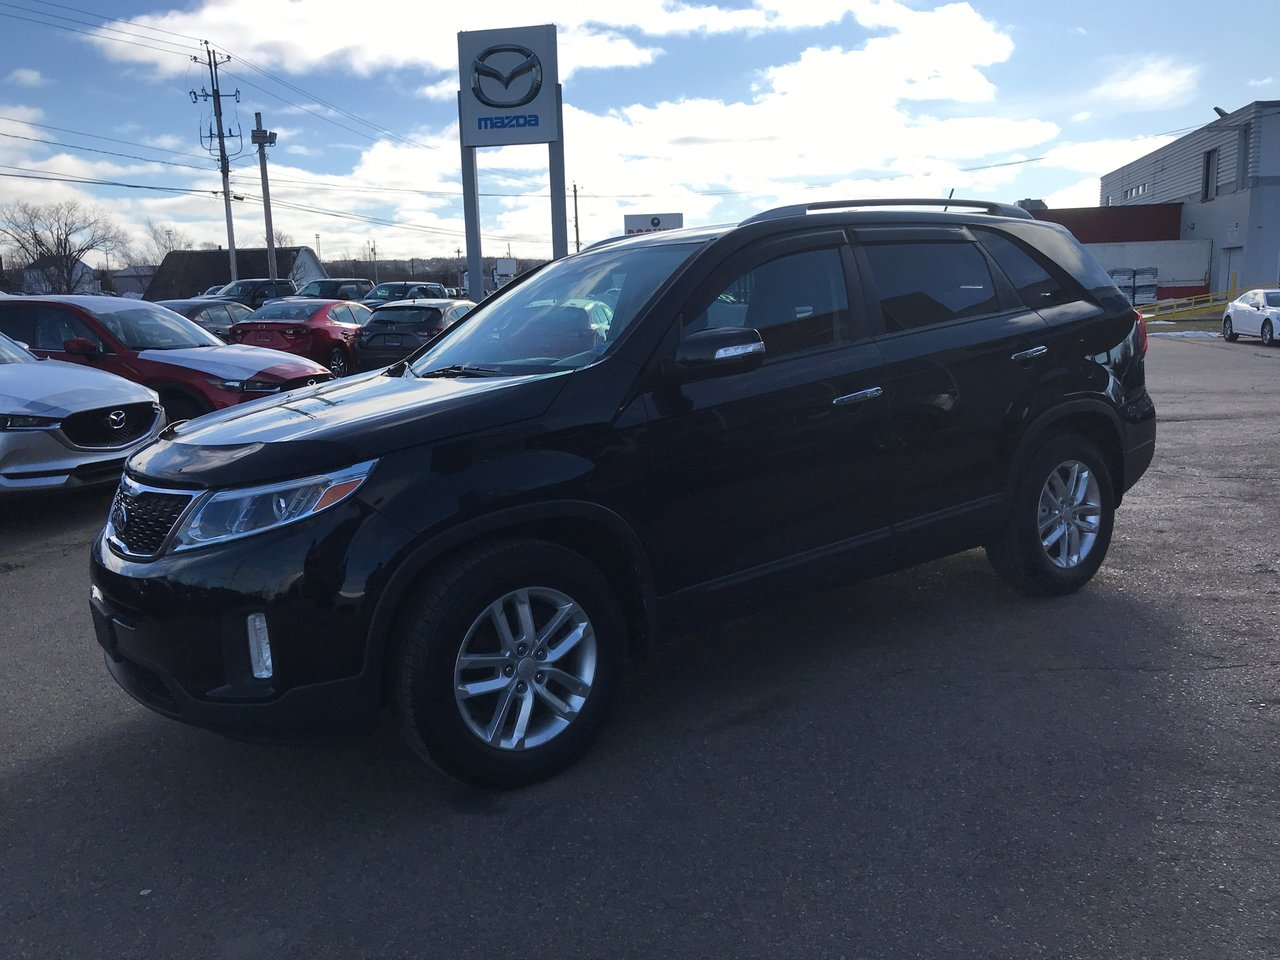 Used 2014 kia sorento 55wk taxes in heated seats new tires photo 2014 kia sorento 55wk taxes in heated seats new tires publicscrutiny Image collections